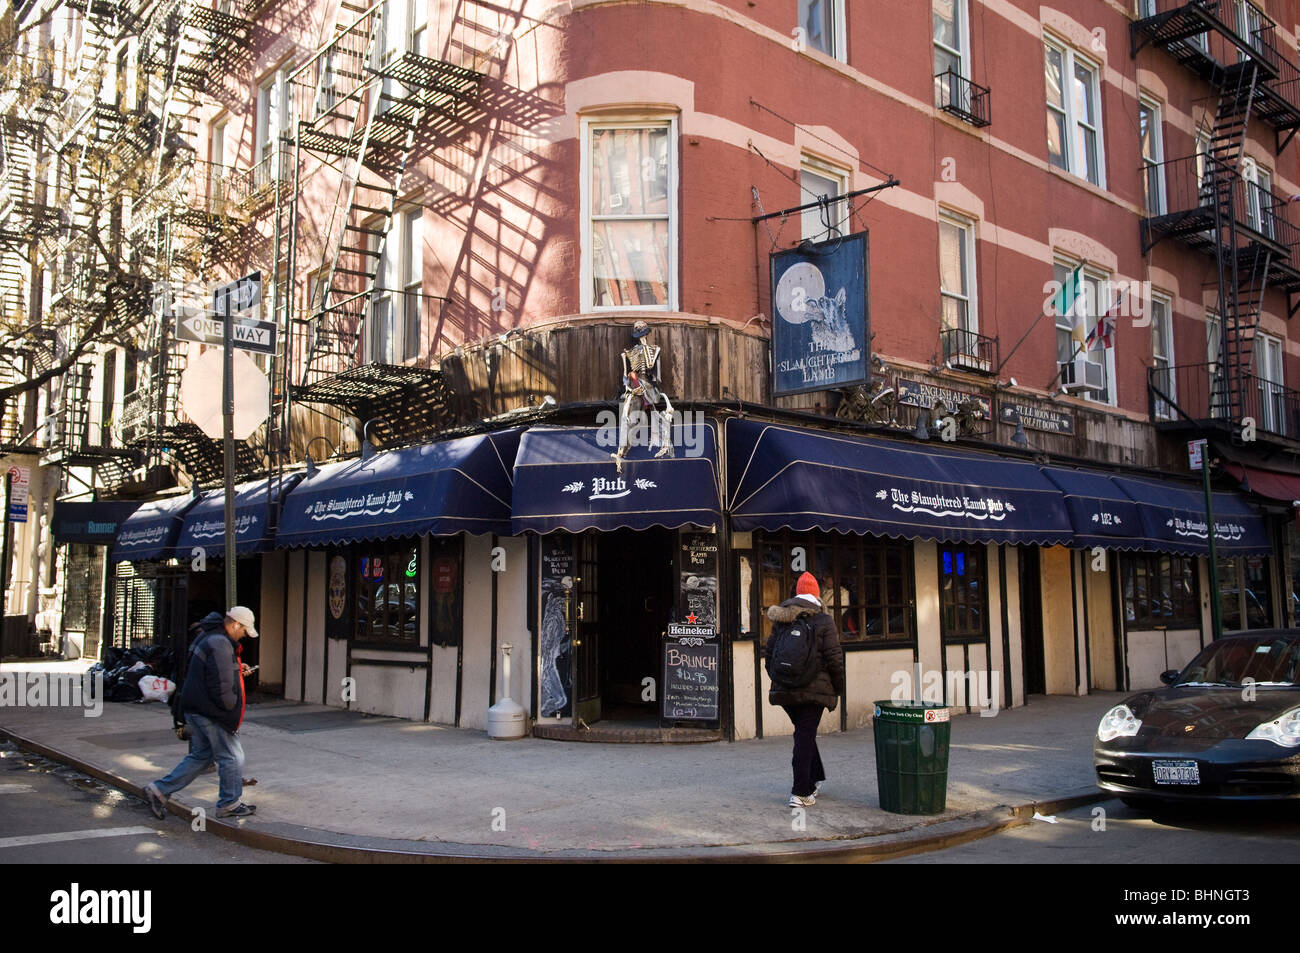 The Slaughtered Lamb Pub in Greenwich Village in New York - Stock Image